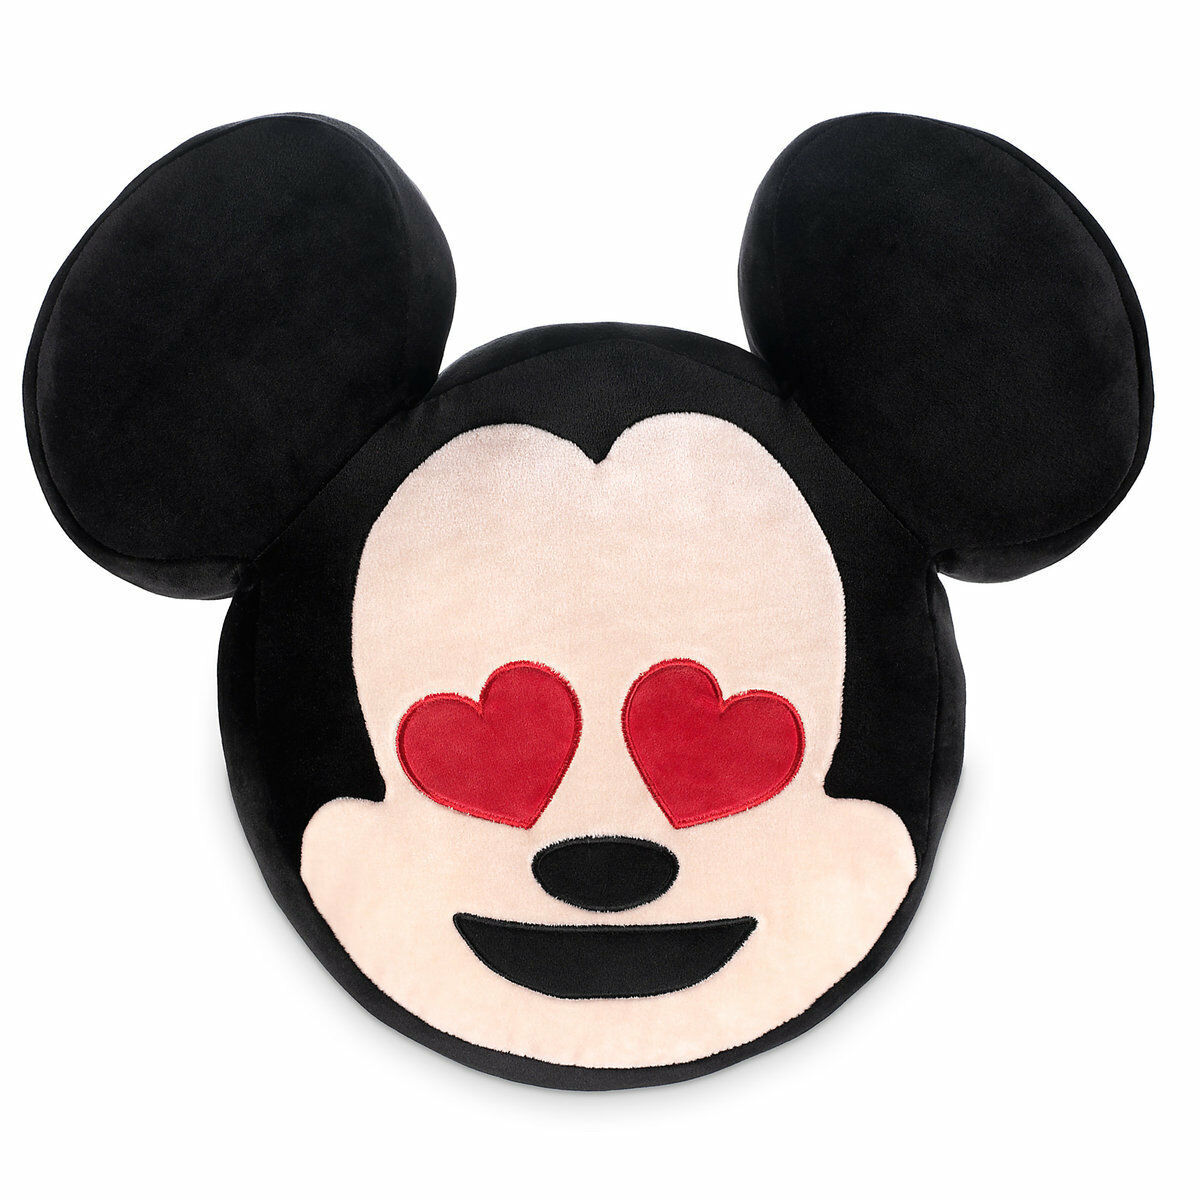 Disney Store Authentic Mickey Mouse Emoji Plush Pillow Two S